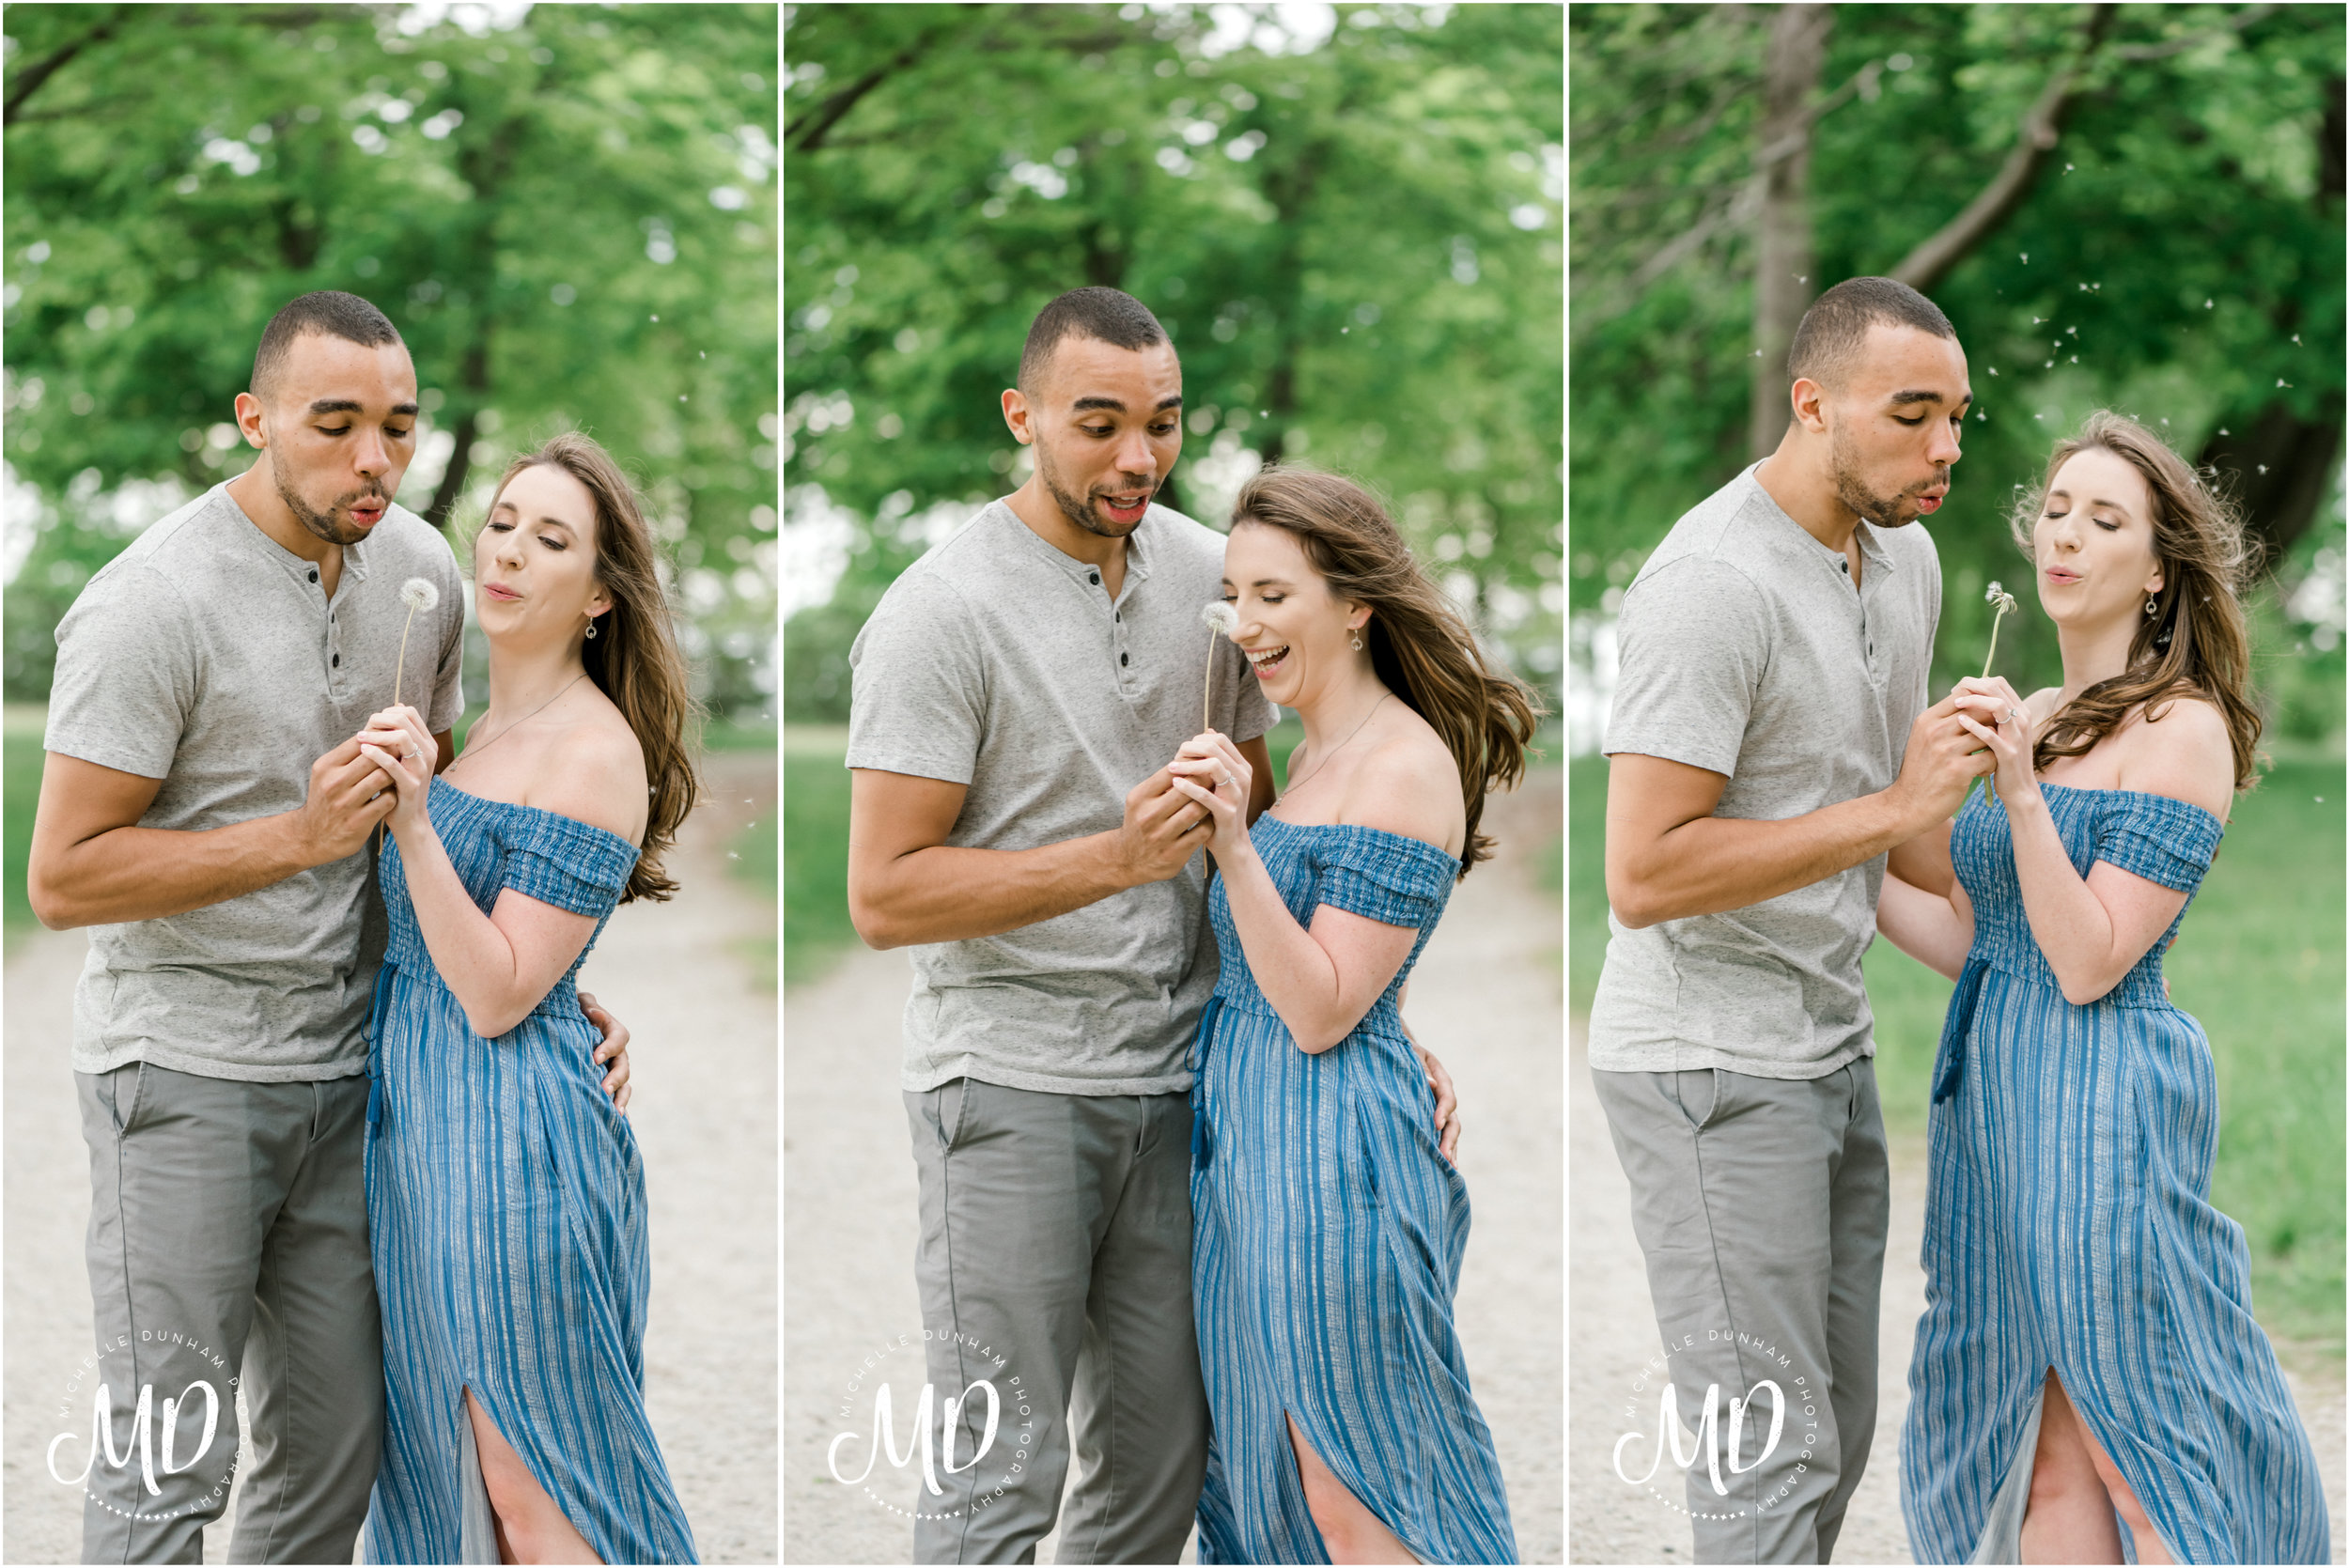 worlds_end_hingham_engagement_boston_cape_cod_wedding_photographer_michelle_dunham_photography_dandelion.jpg